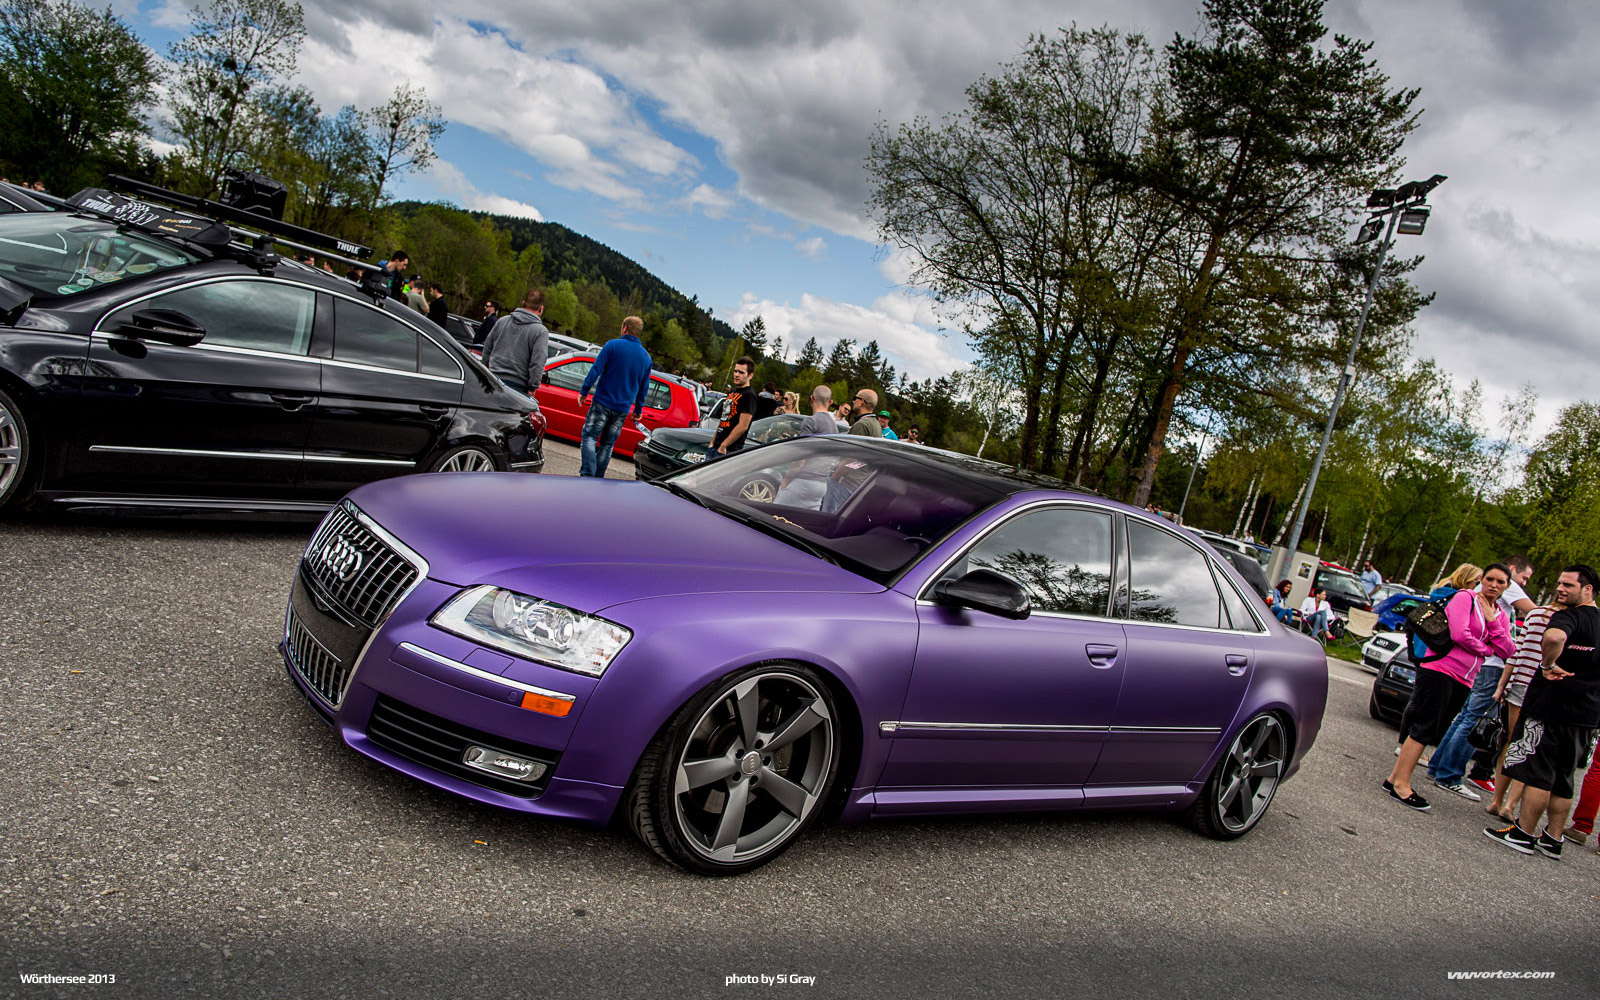 worthersee-2013-gallery-si-gray-024